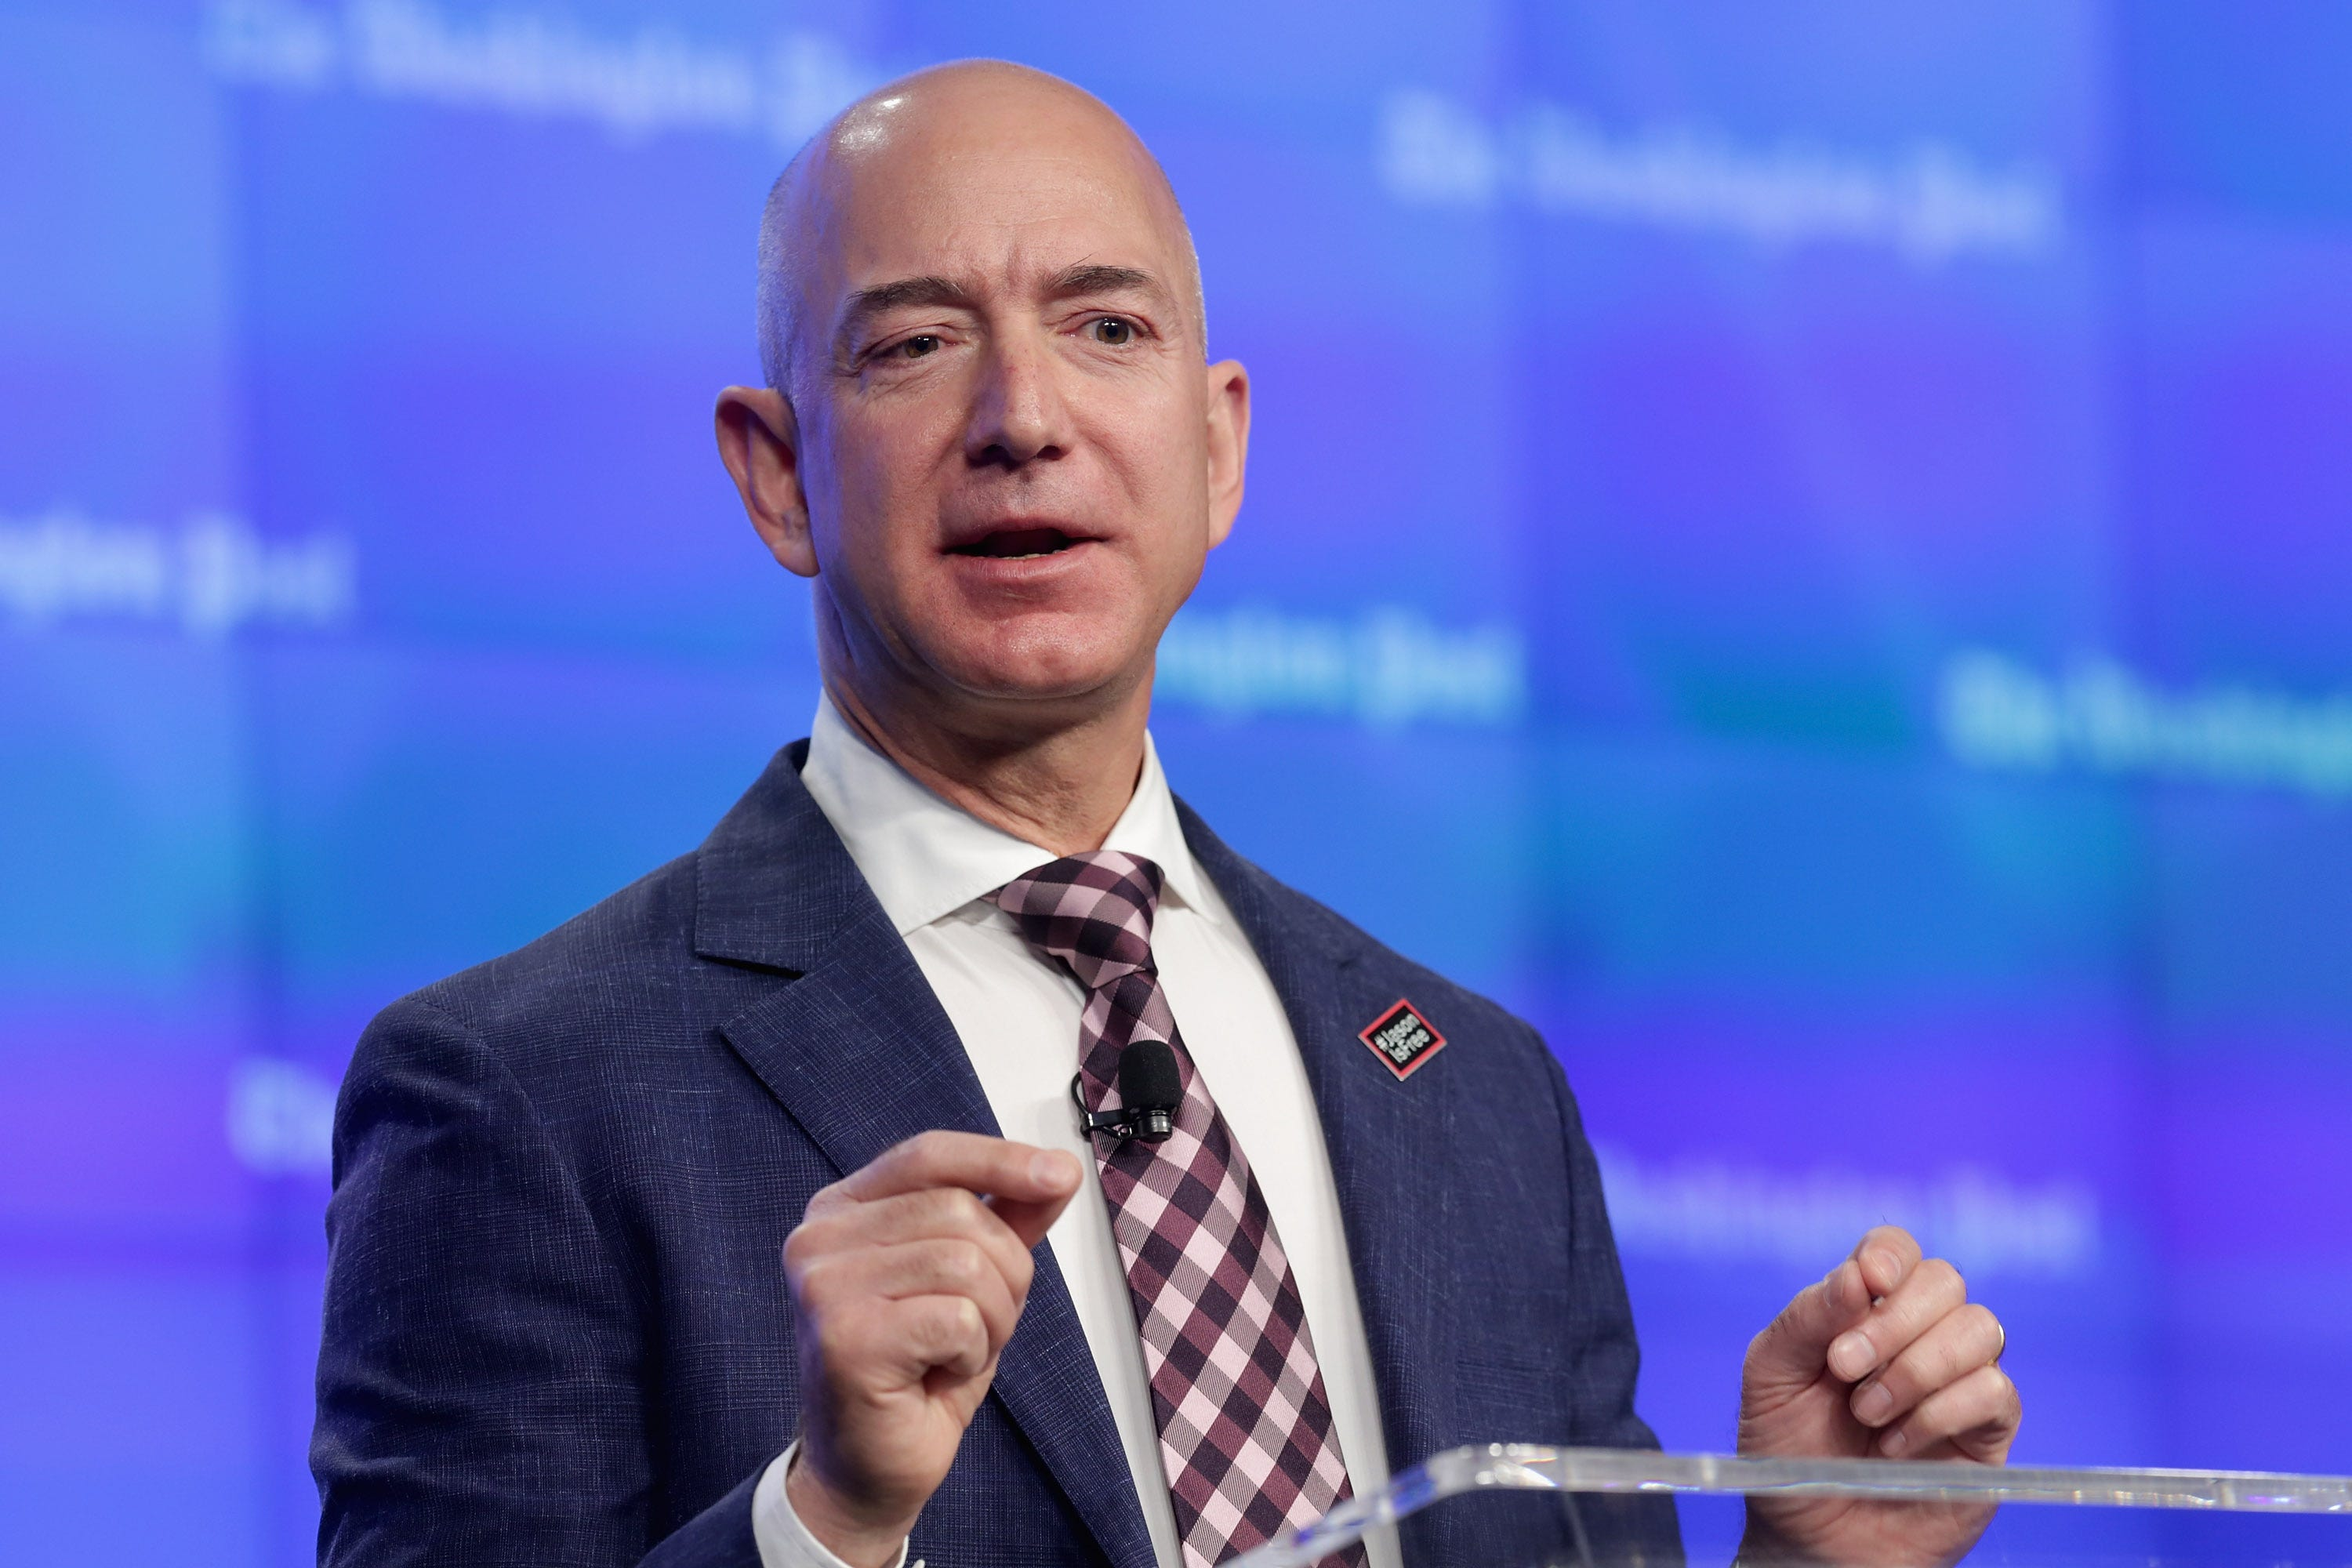 Jeff Bezos Is Now The Worlds Richest Man With A Fortune Of Over US100 Billion